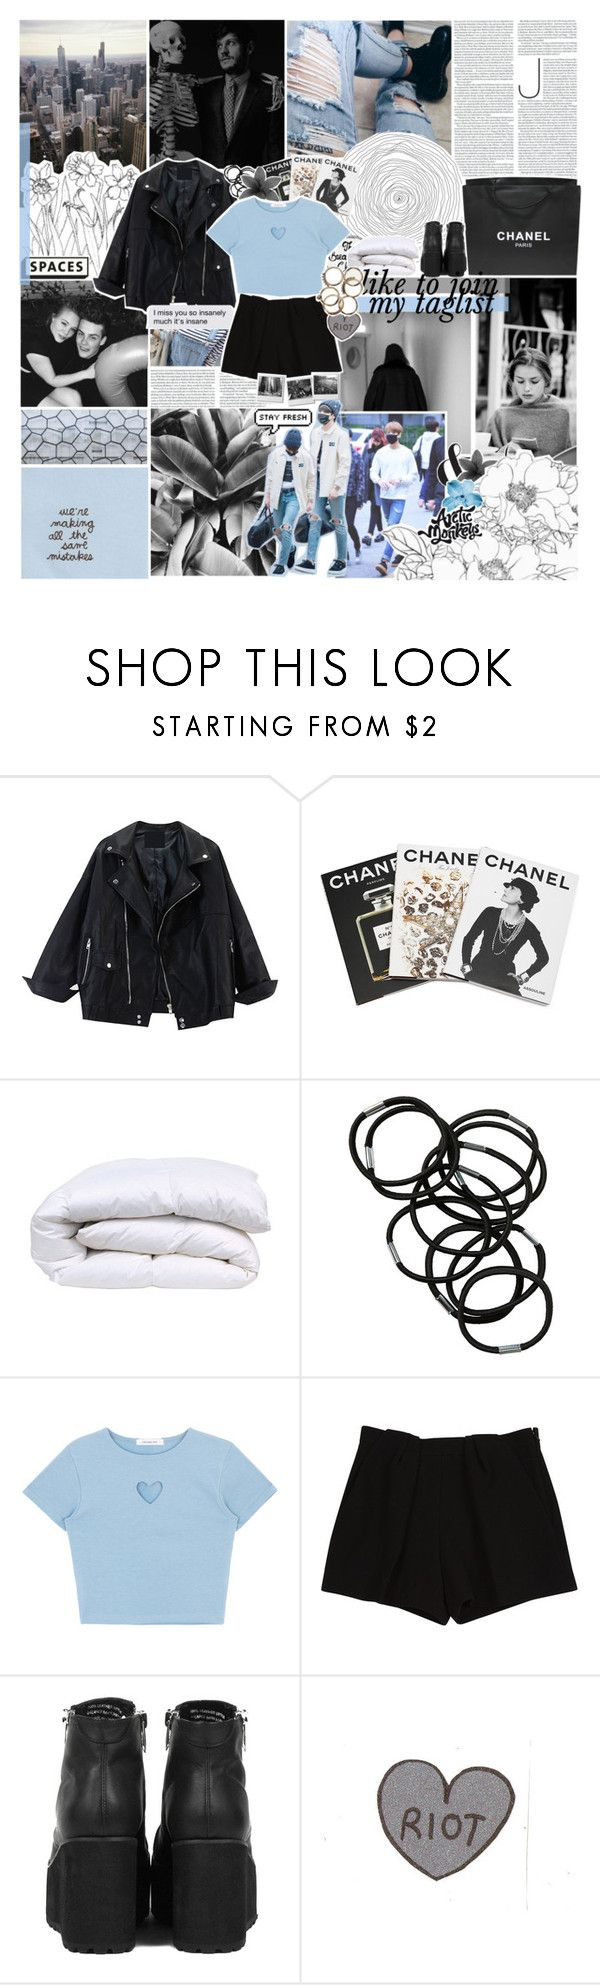 """""""LIKE TO JOIN MY SUMMER TAGLIST ♡"""" by unkingly ❤ liked on Polyvore featuring Gosh, Assouline Publishing, Monki, Chloé and Chanel"""